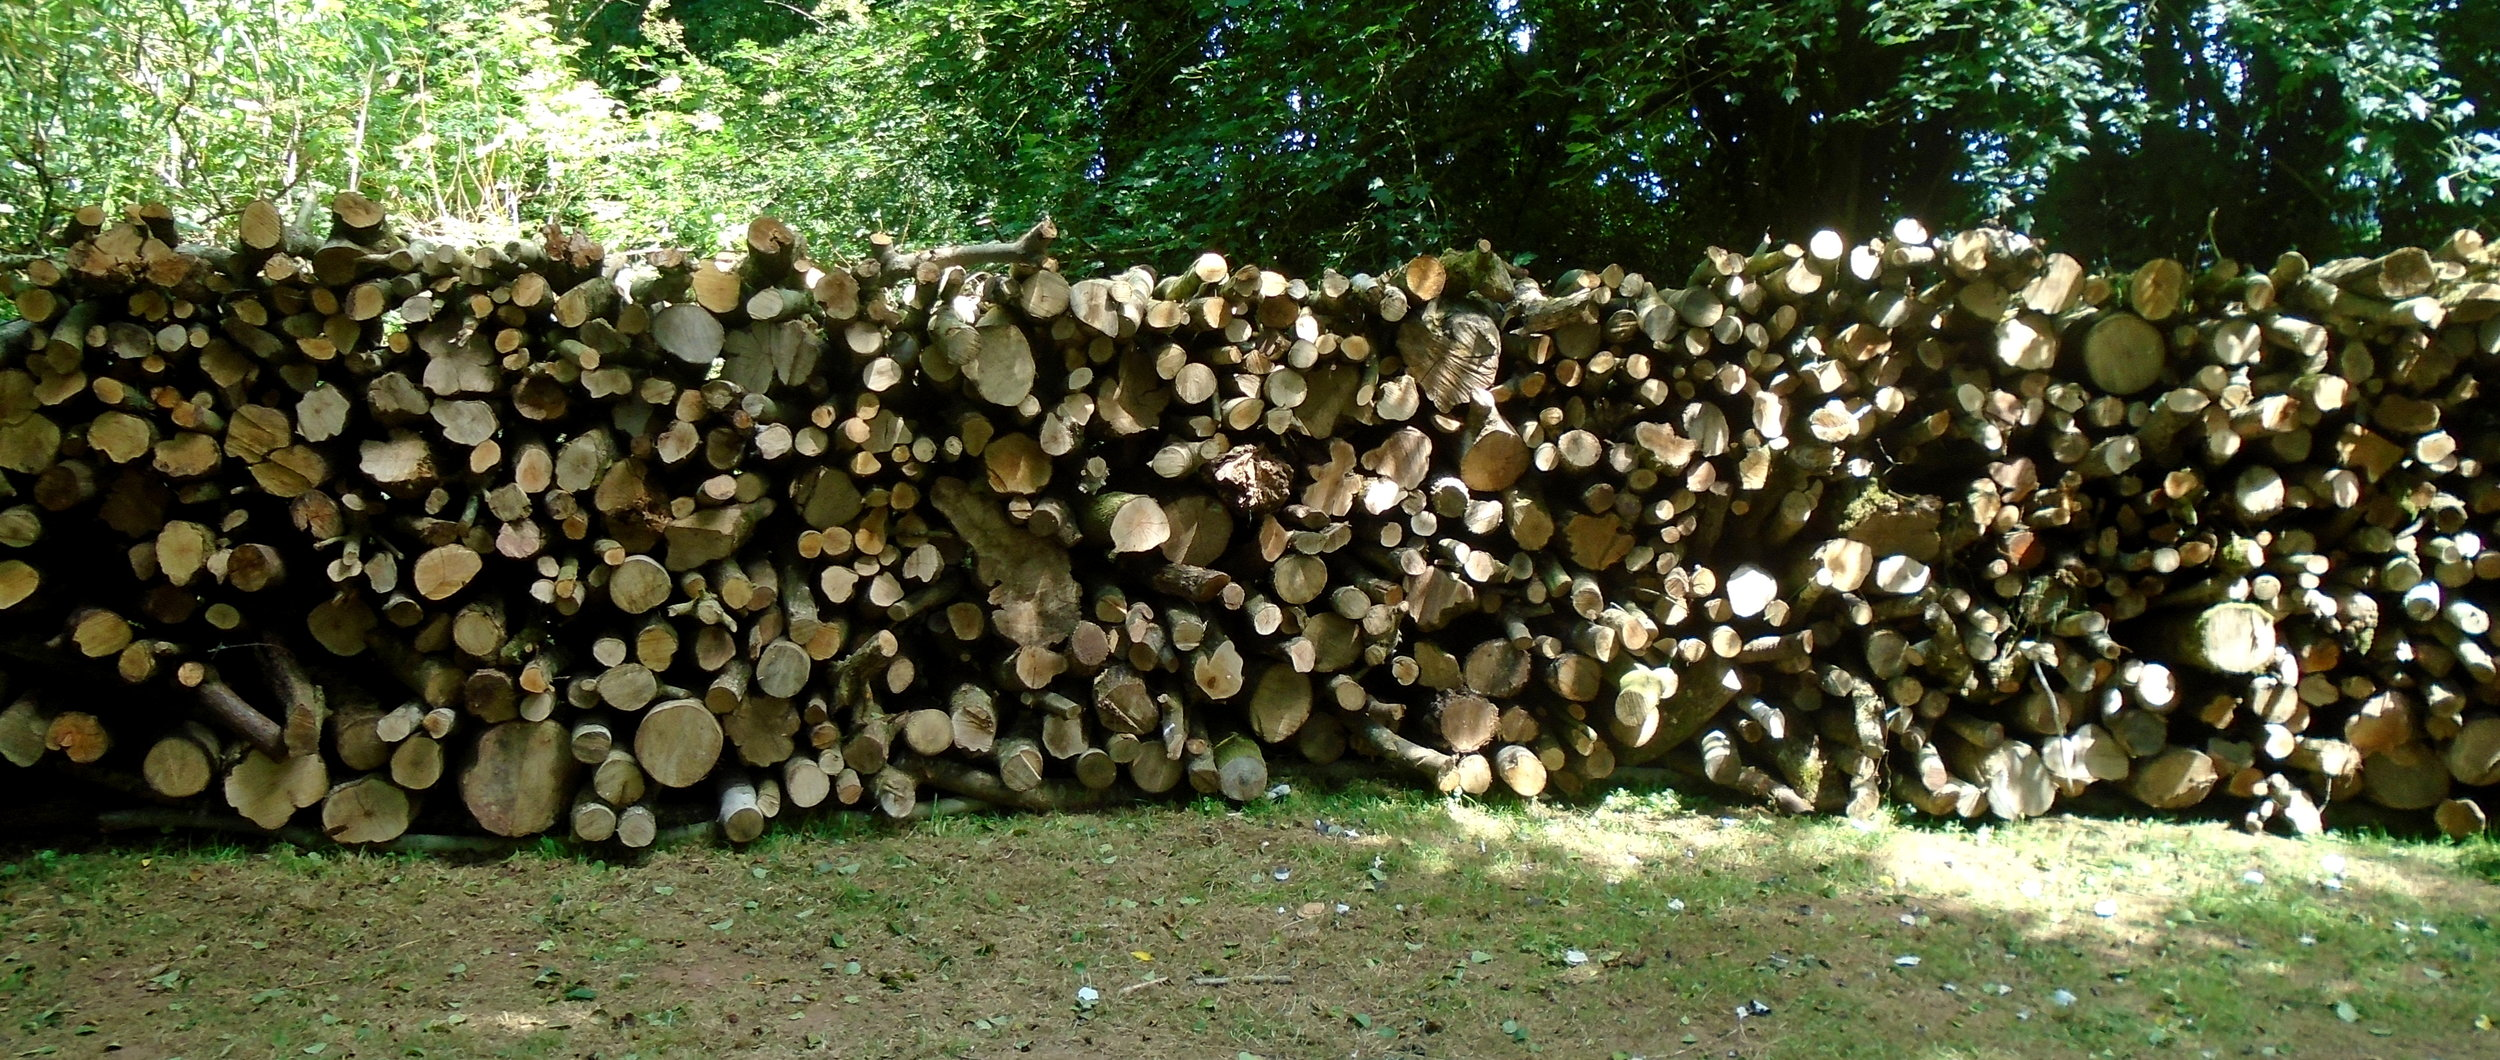 Firewood cords ready for processing.